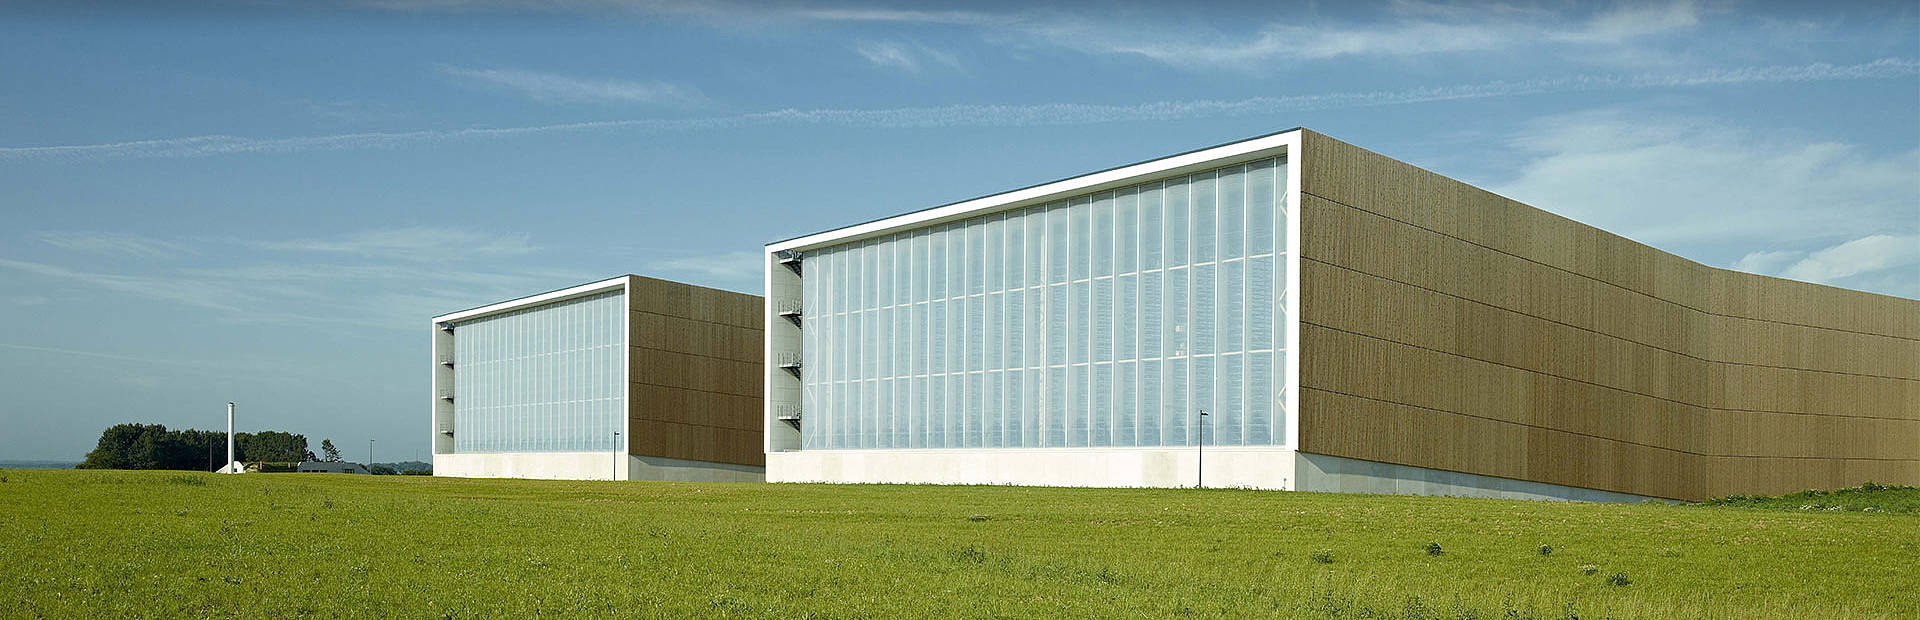 Trimo façade system on Bestseller logistic centre in Denmark